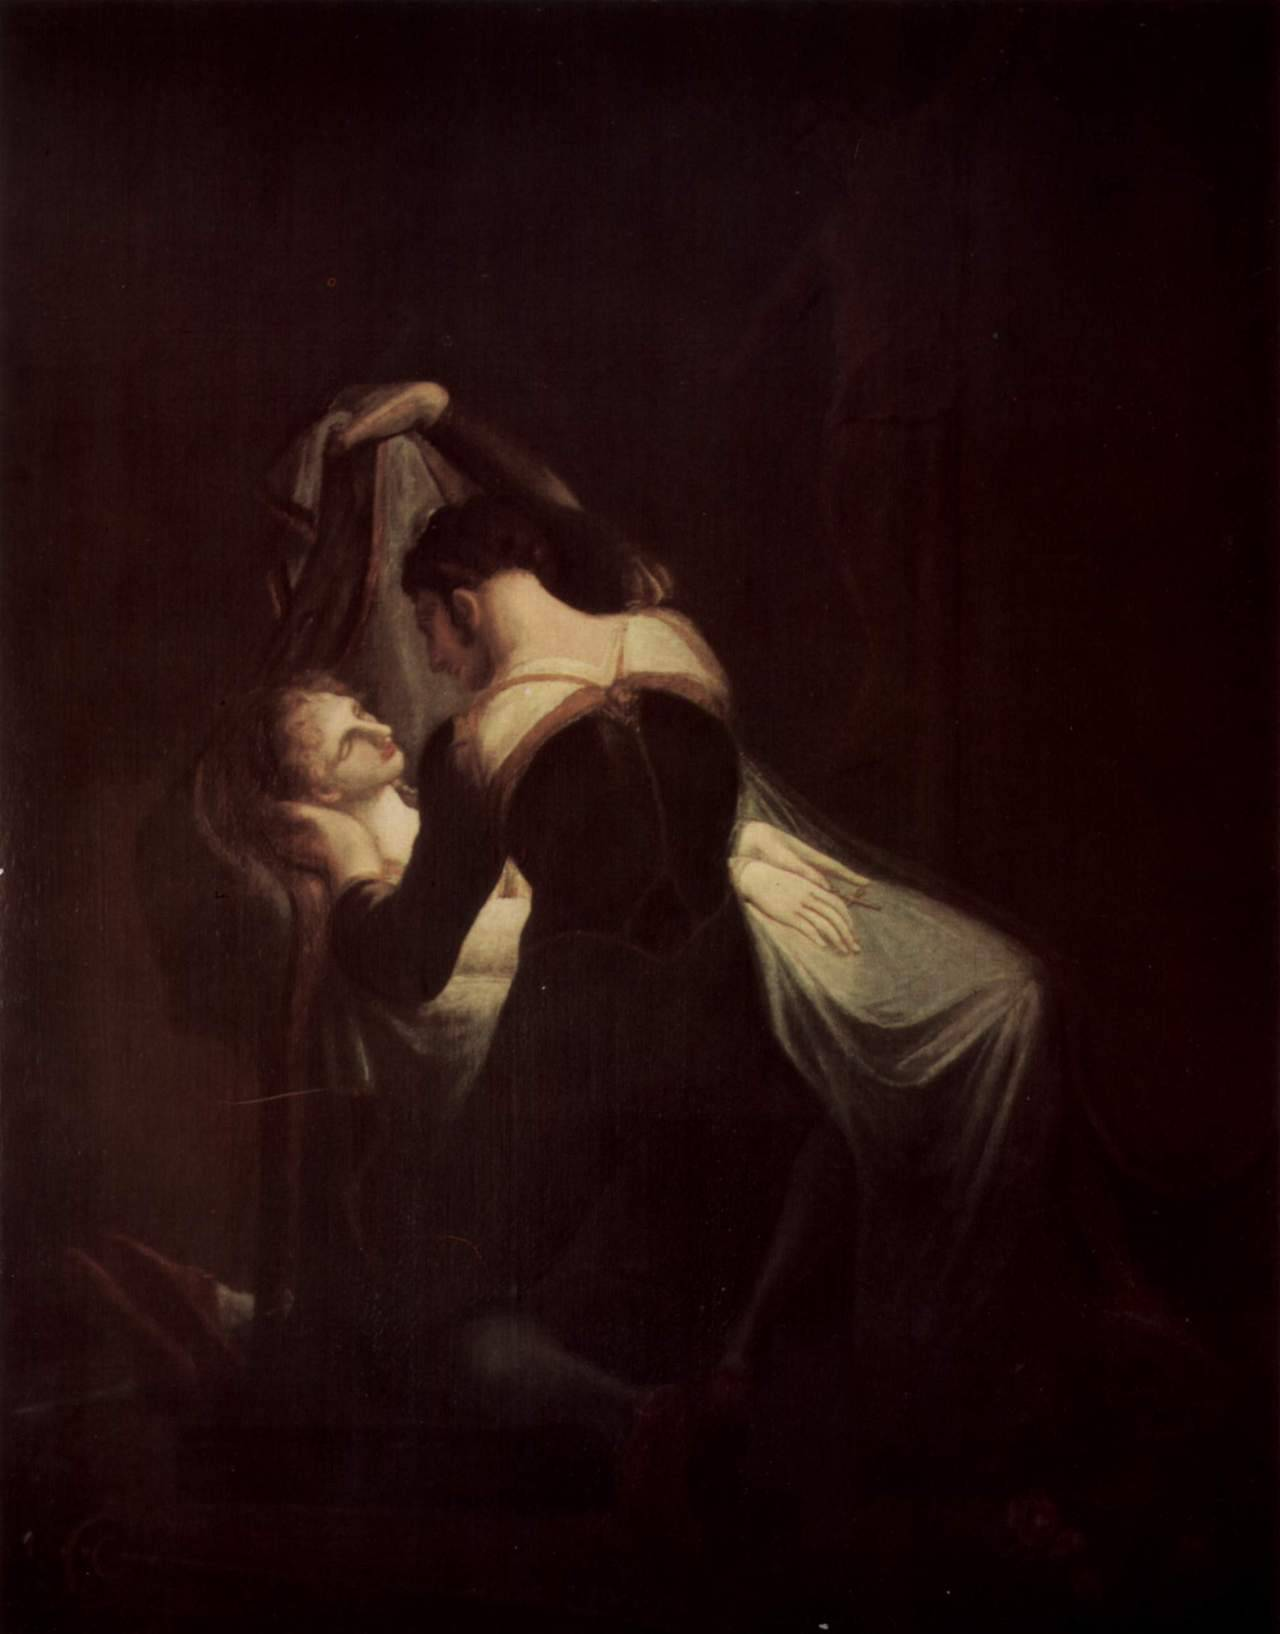 Romeo at Juliet's Deathbed, by Henry Fuseli (1809)